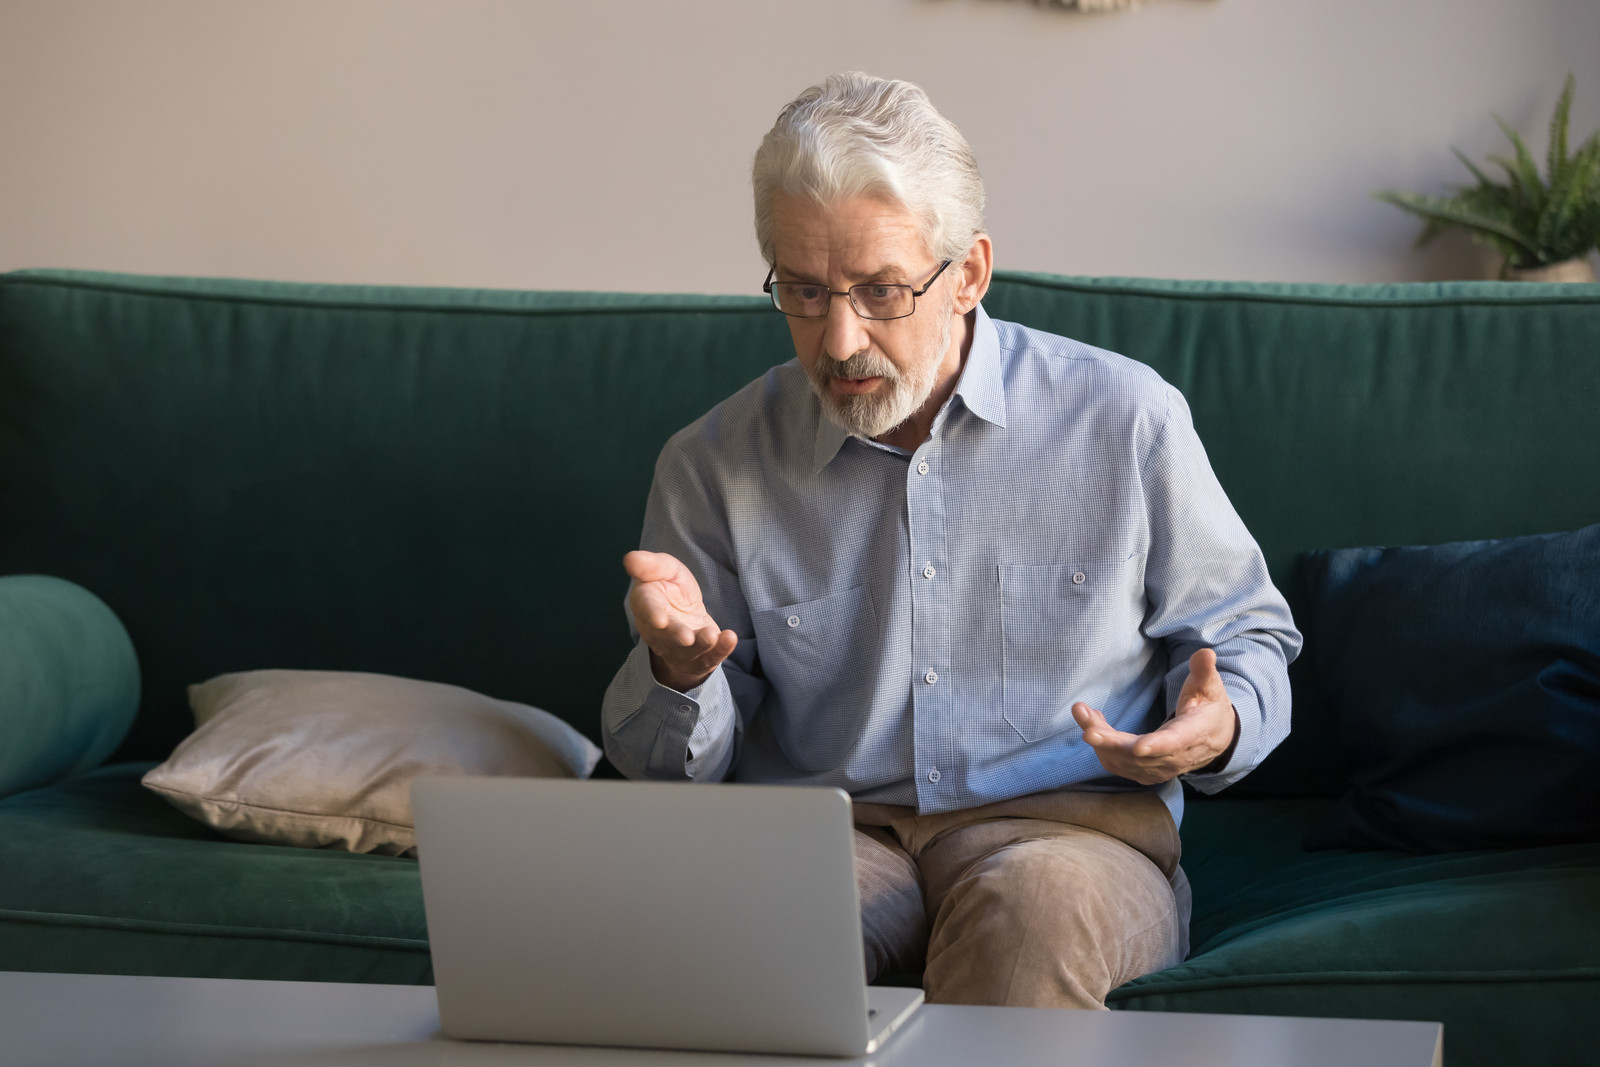 Senior man sitting on a green couch looking down into a laptop explaining something